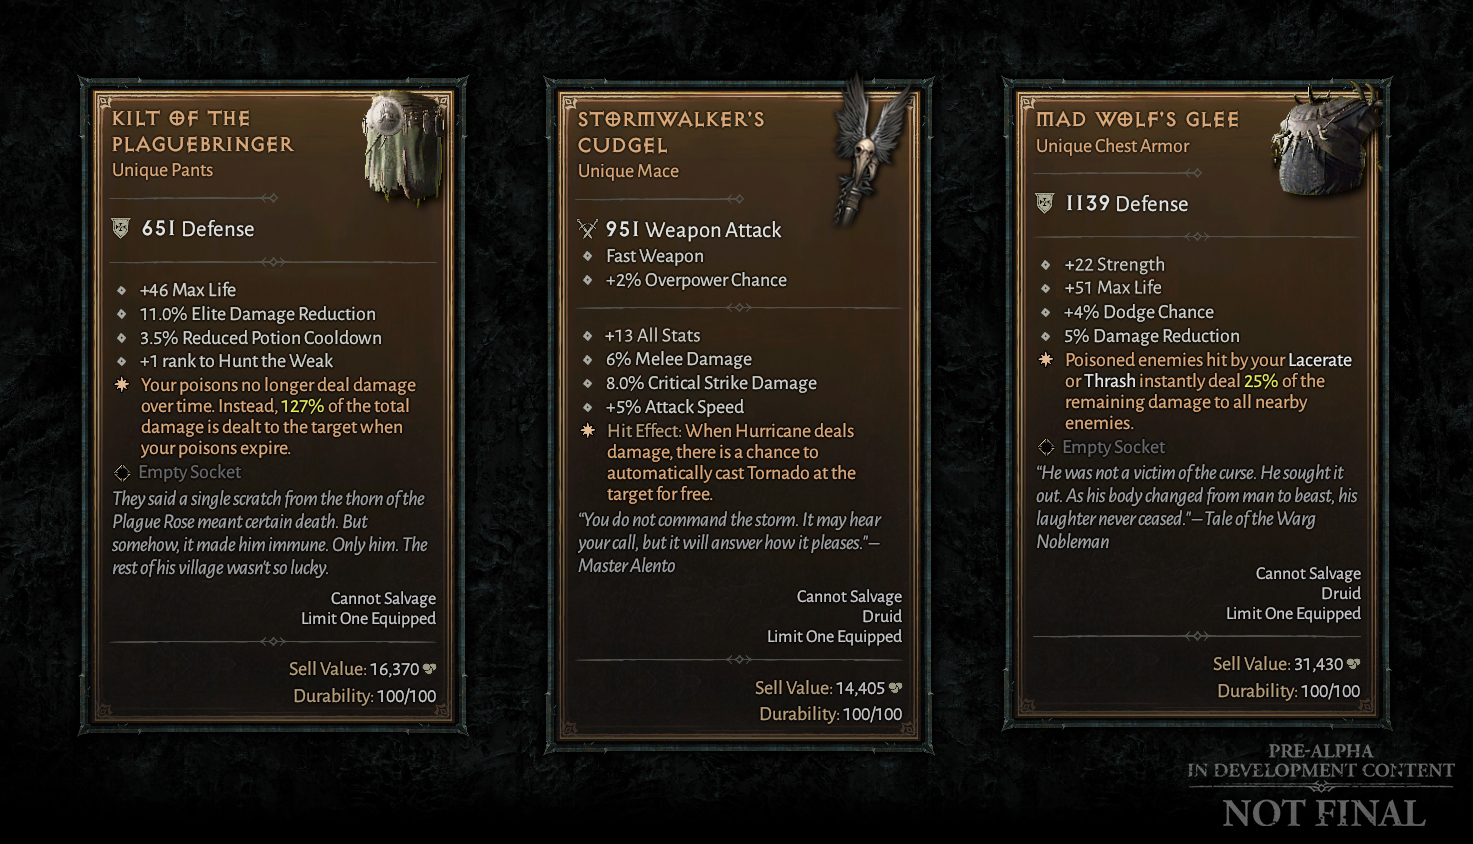 Also the return of Unique items. Hopefully we'll get more information at Blizzcon this year.